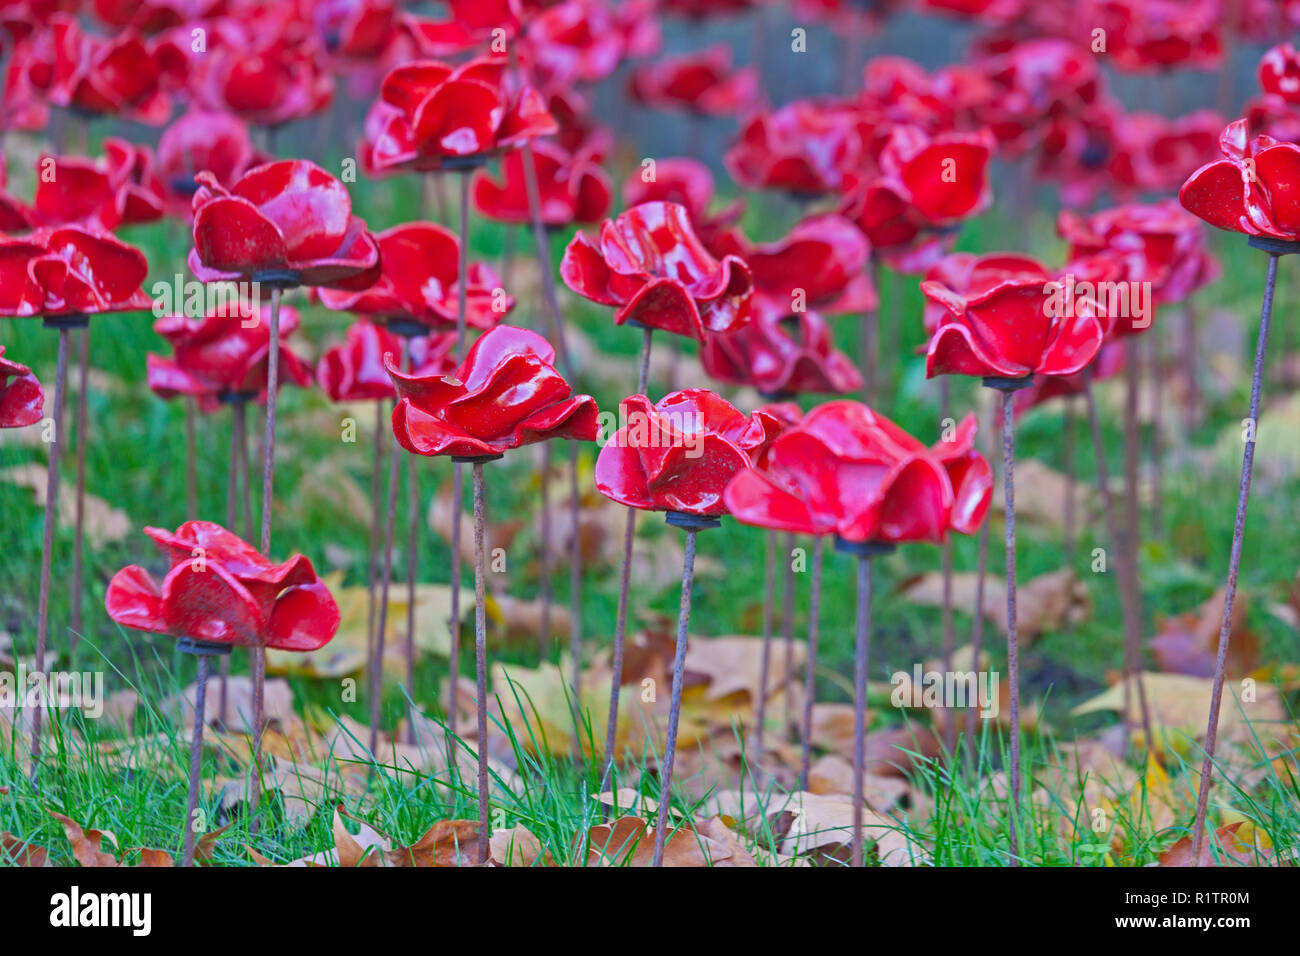 London, Lambeth.  Ceramic poppies in the 'Weeping Window' installation at the Imperial War Museum, marking the centenary of the end of World War I. - Stock Image